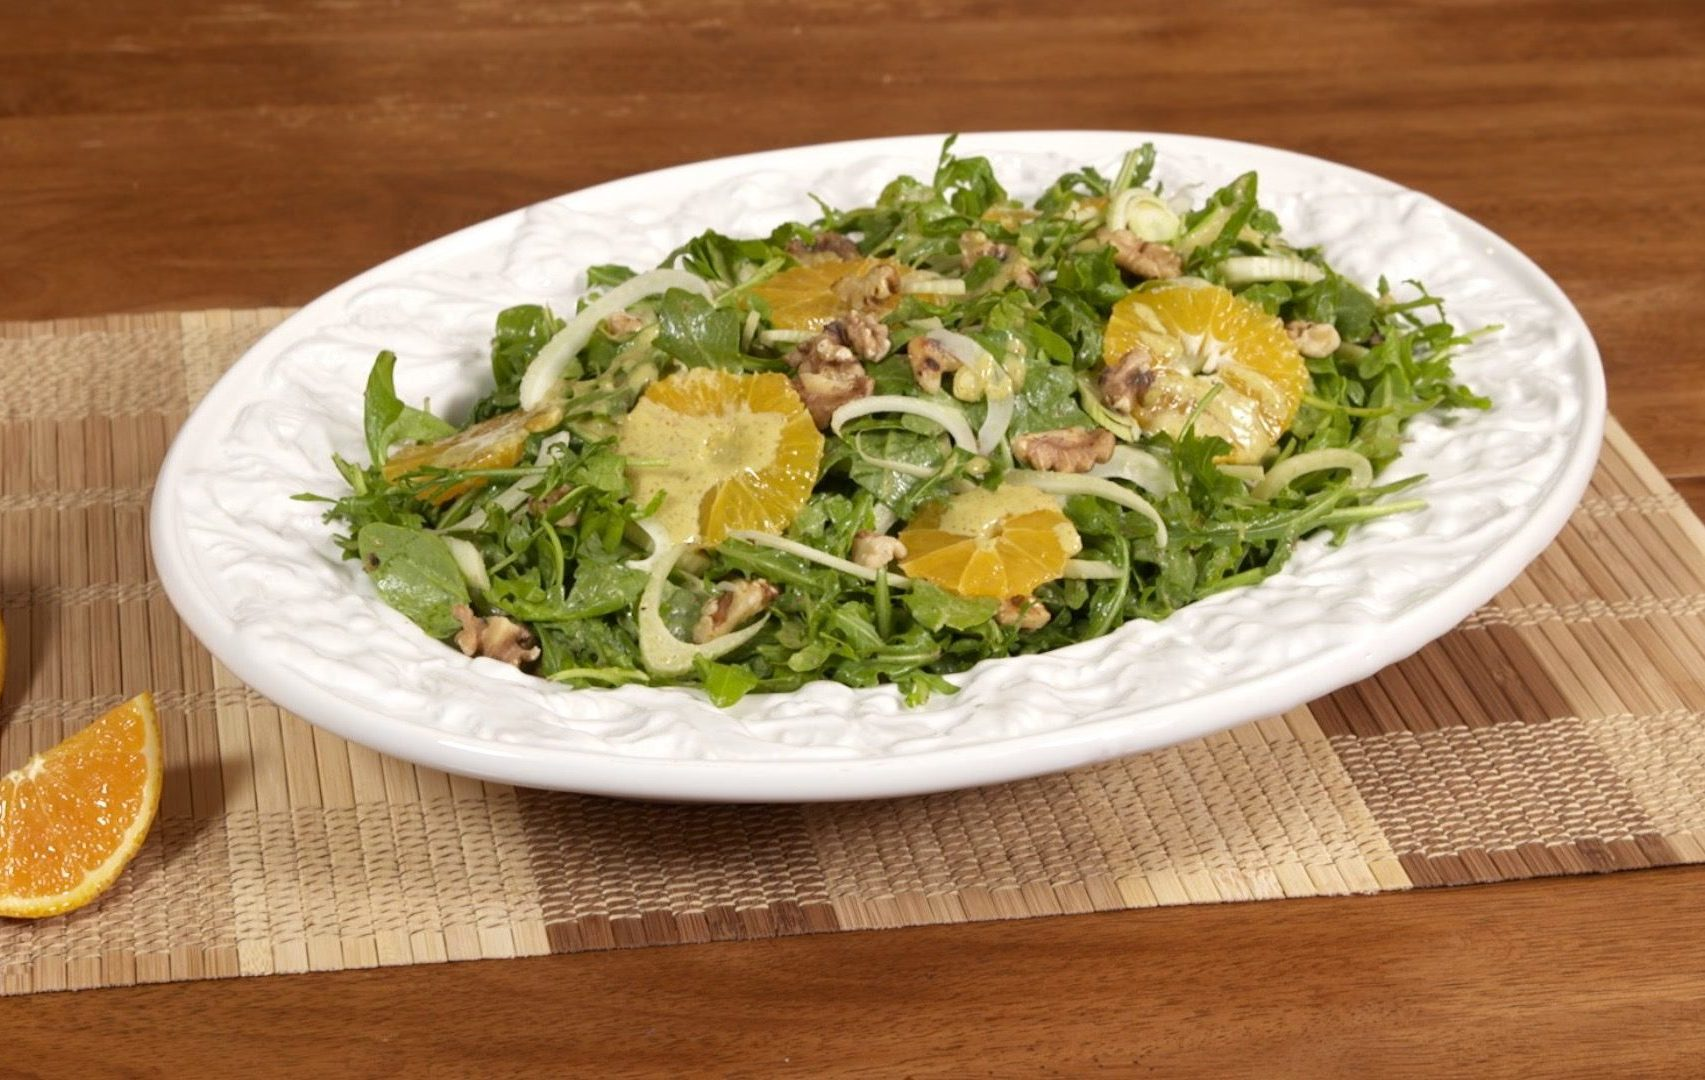 Marukan Fennel and Arugula Salad with Orange Vinaigrette